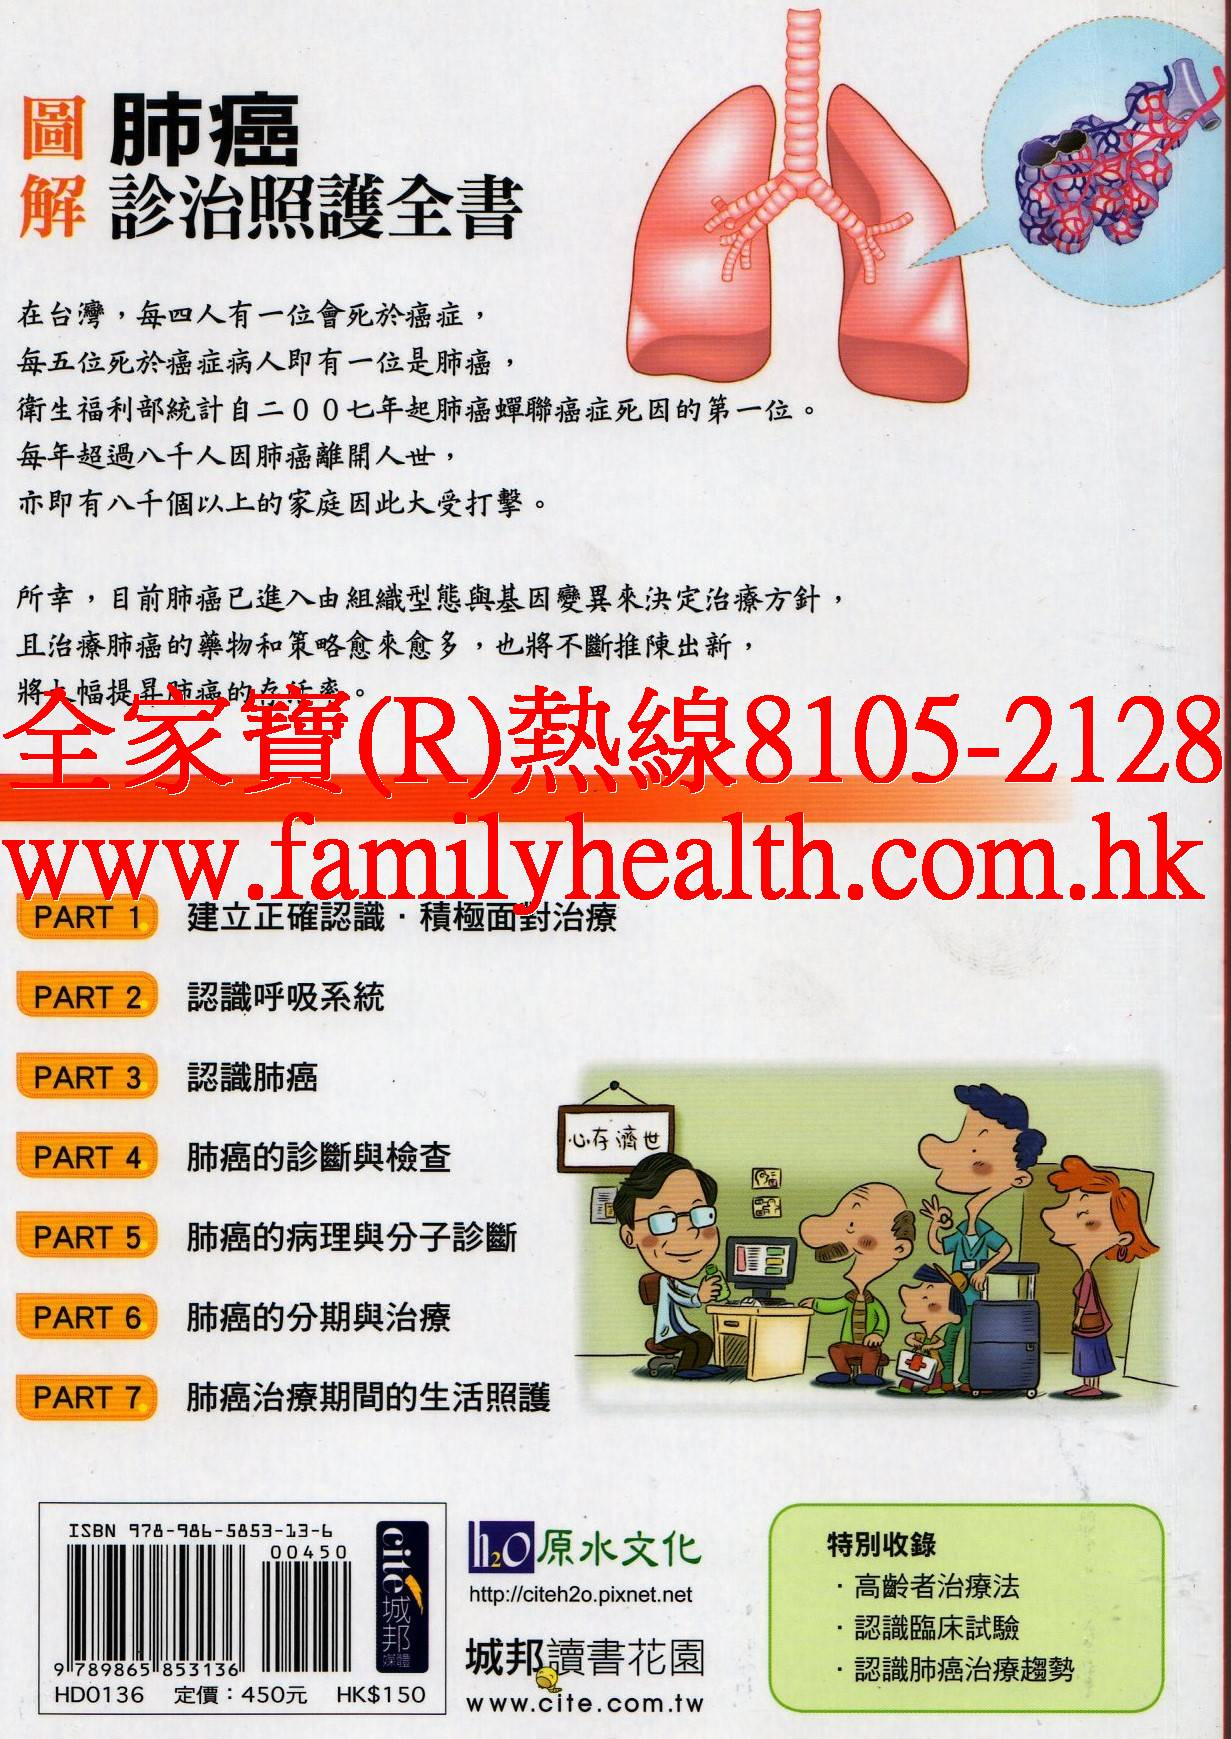 http://www.familyhealth.com.hk/files/full/1155_1.jpg